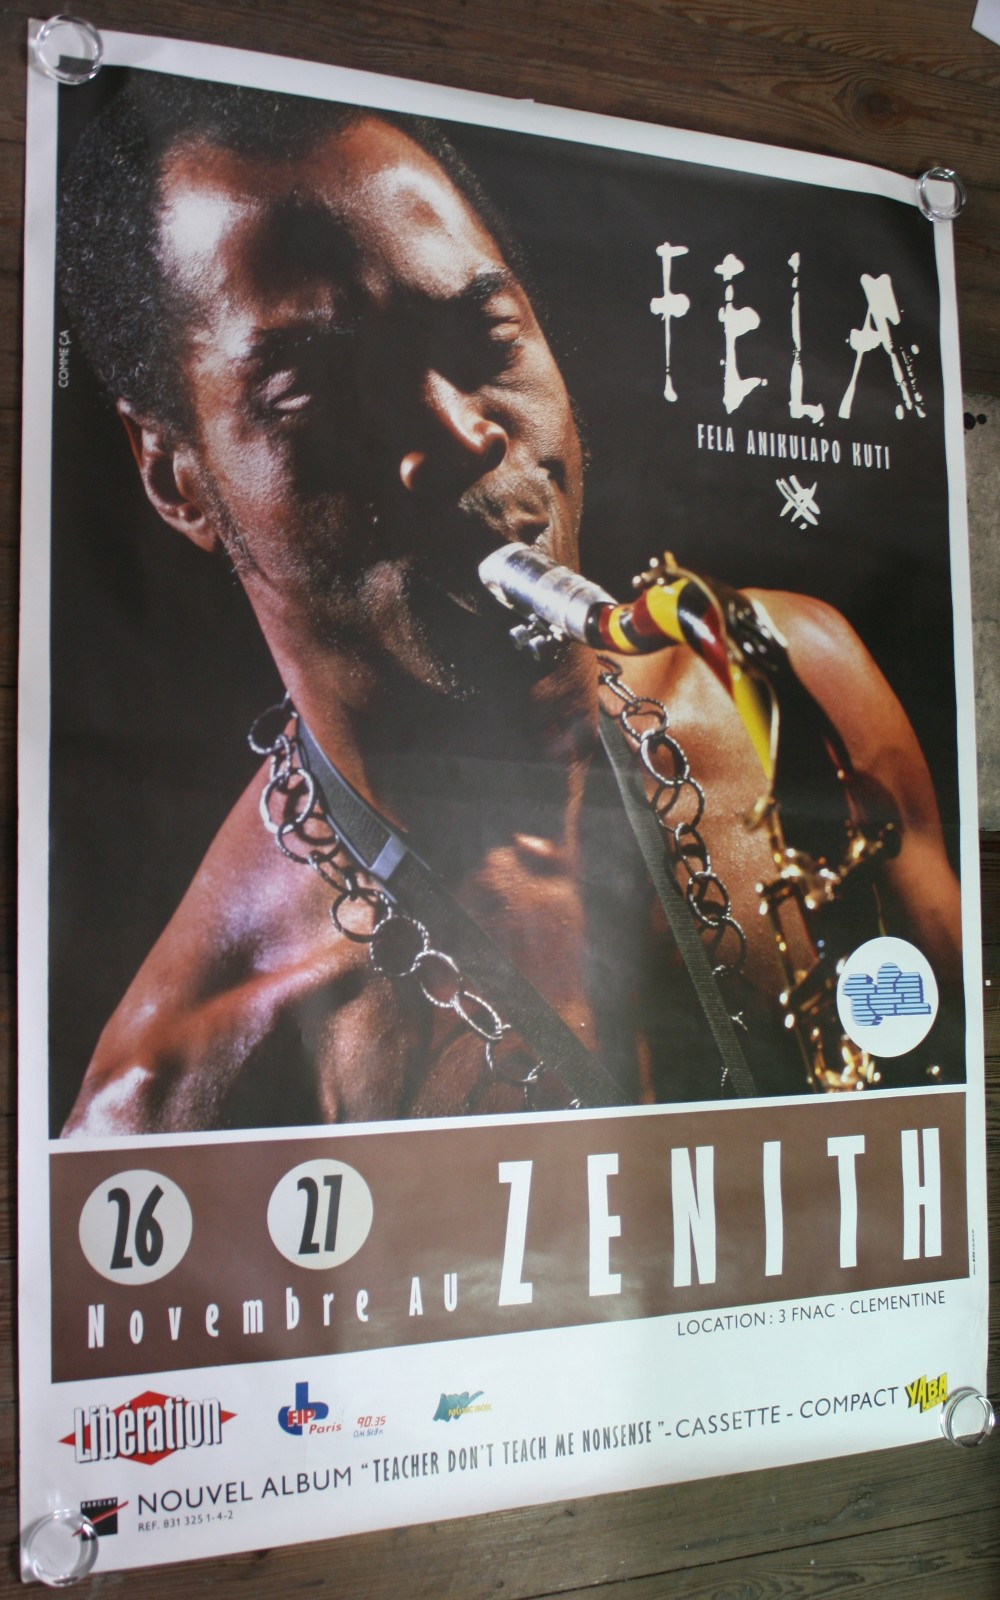 Lot 53 - FELA KUTI - very large French concert poster (62``x46``) from the early 80s. The poster is rolled